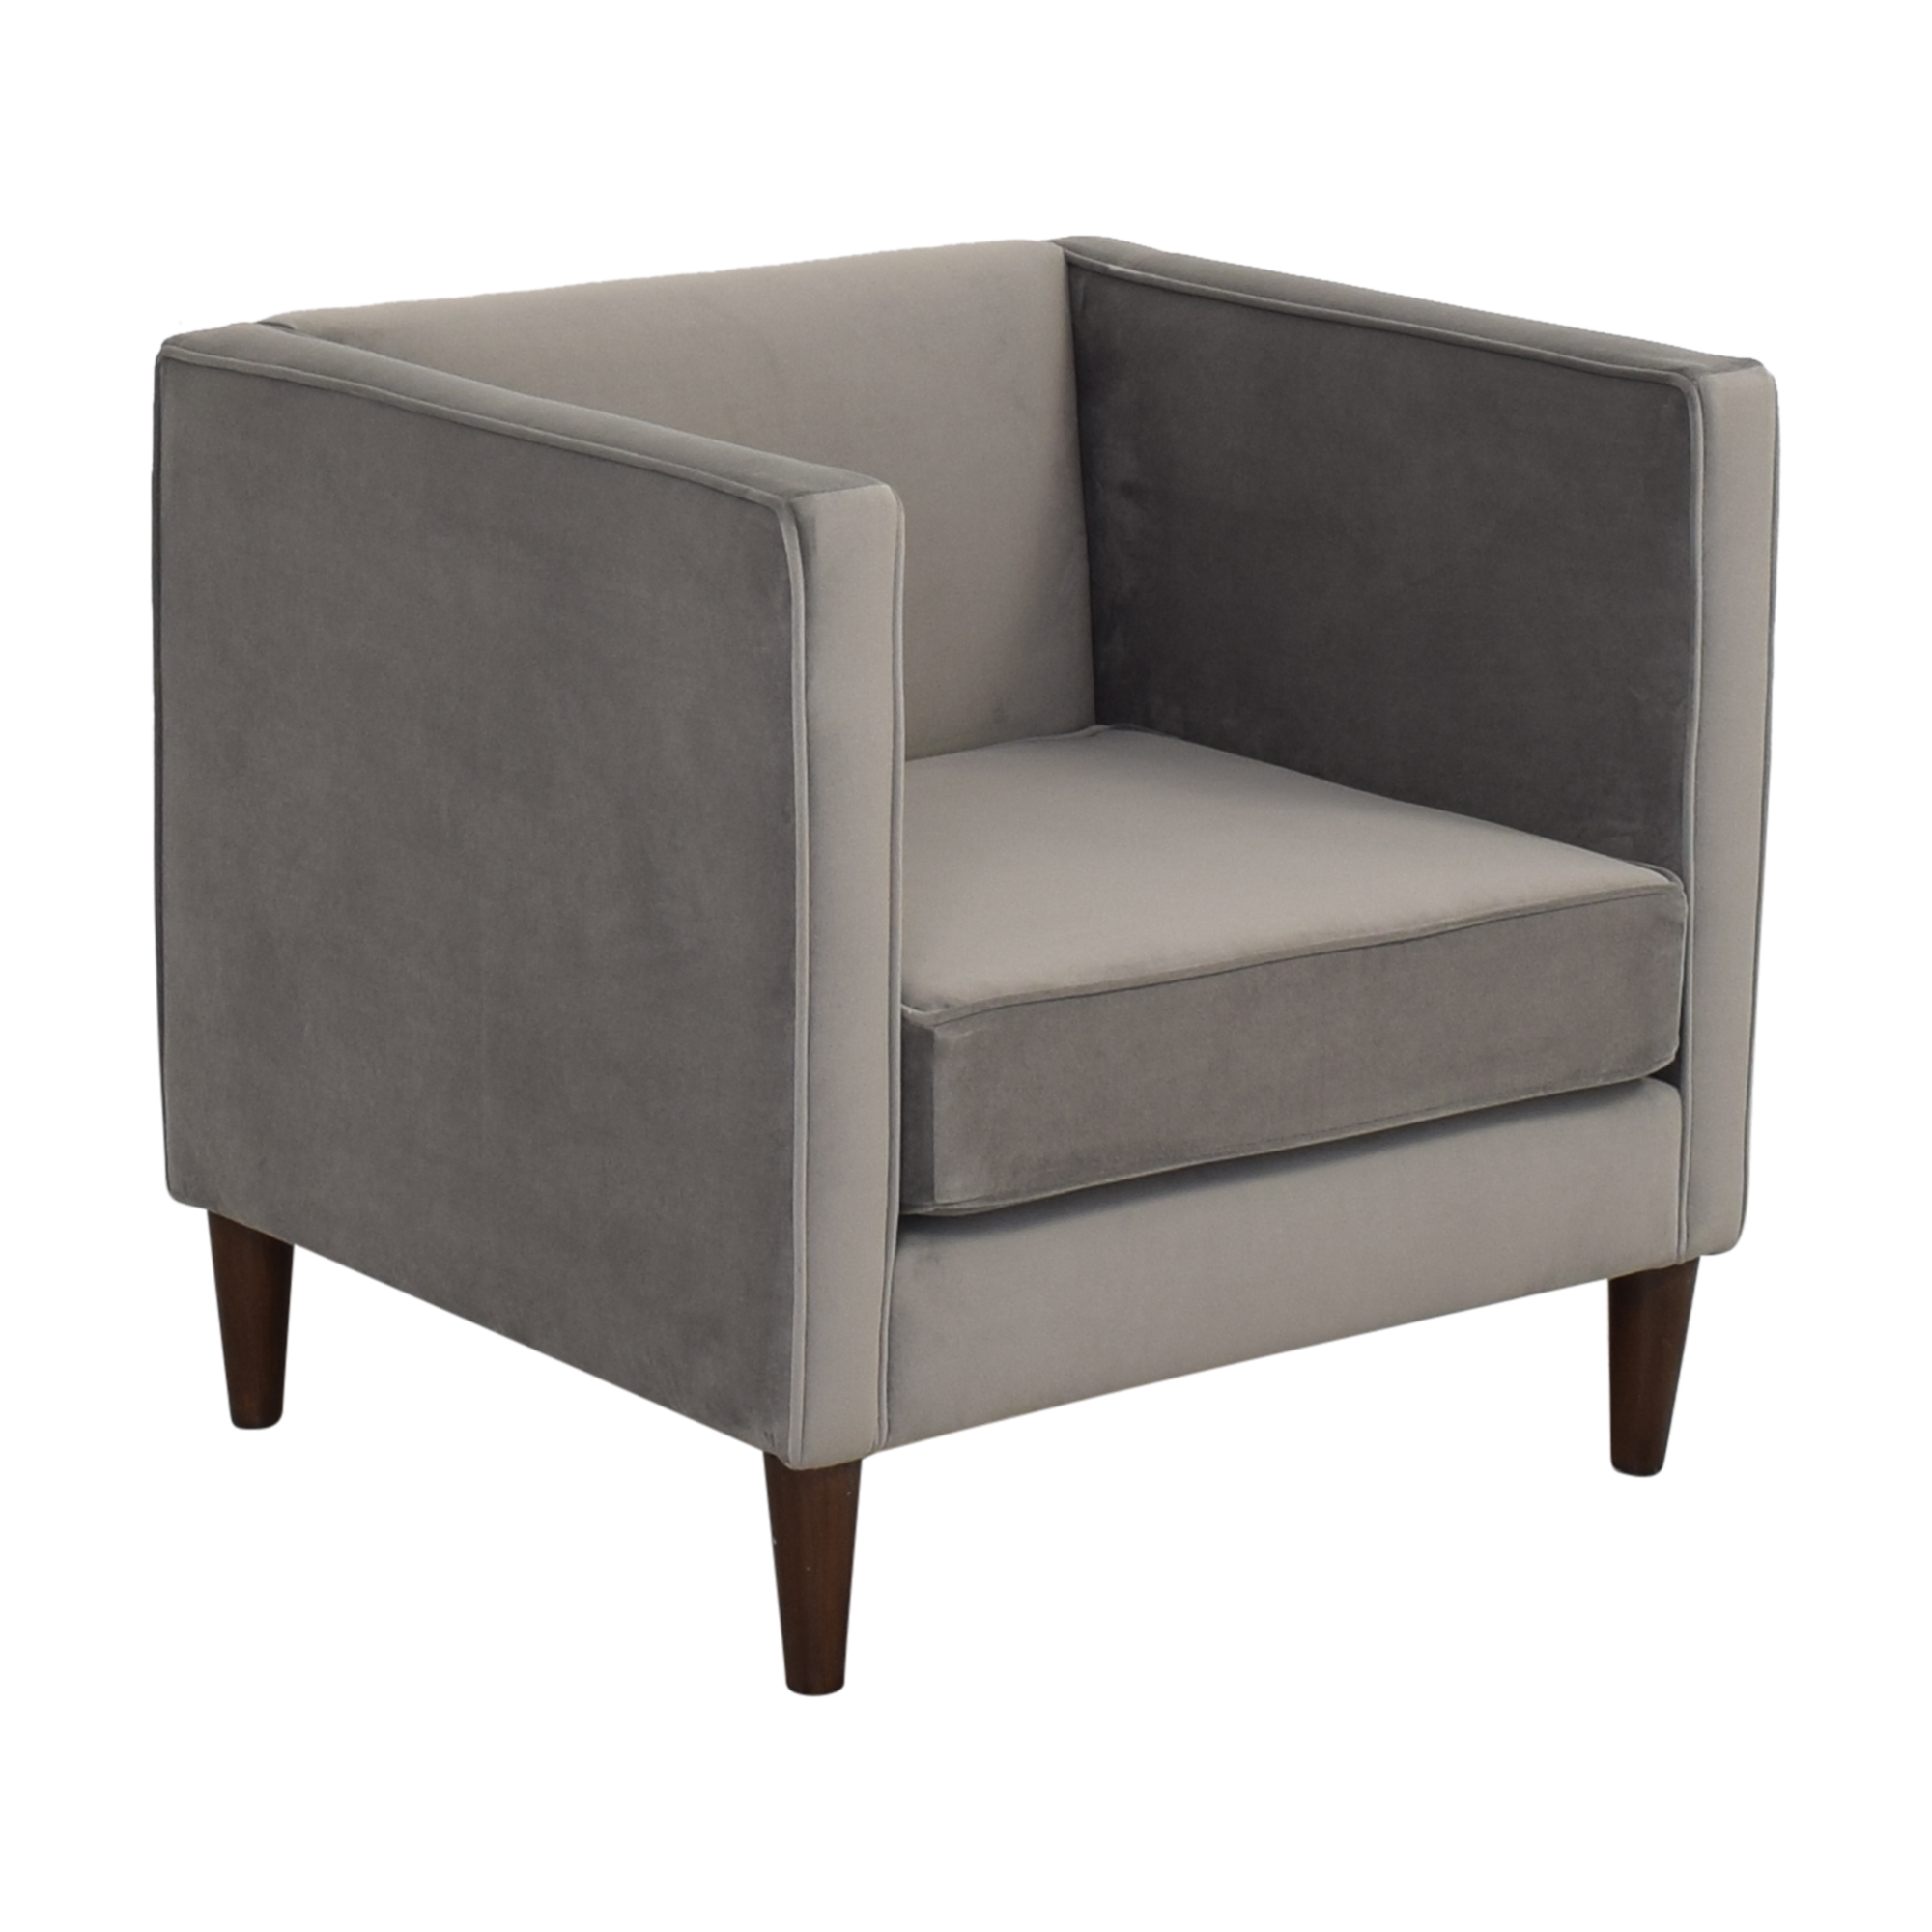 buy The Inside Tuxedo Chair The Inside Accent Chairs